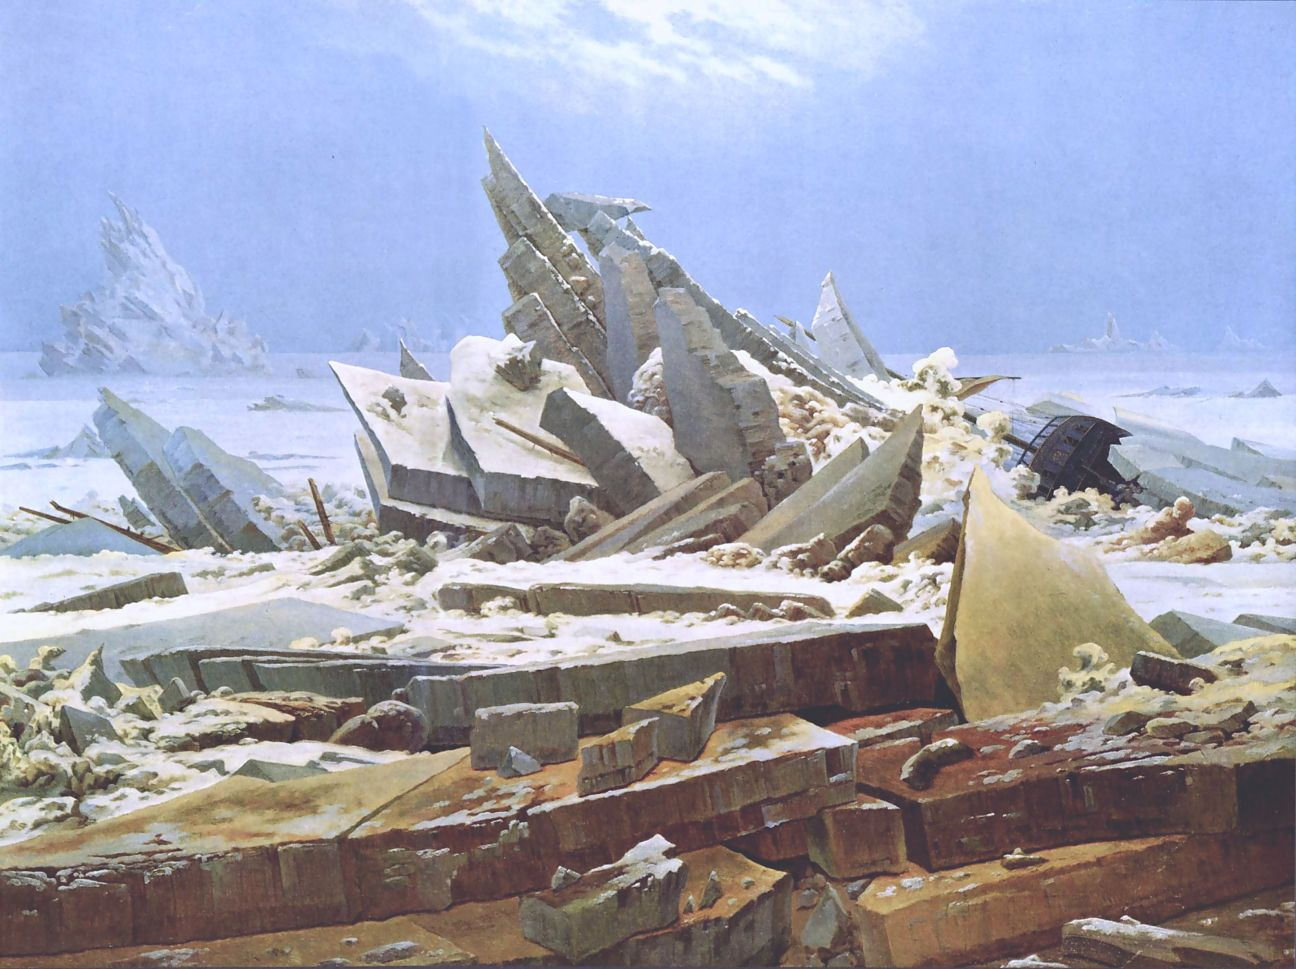 https://i2.wp.com/upload.wikimedia.org/wikipedia/commons/0/0c/Caspar_David_Friedrich_-_Das_Eismeer_-_Hamburger_Kunsthalle_-_02.jpg?resize=1296%2C969